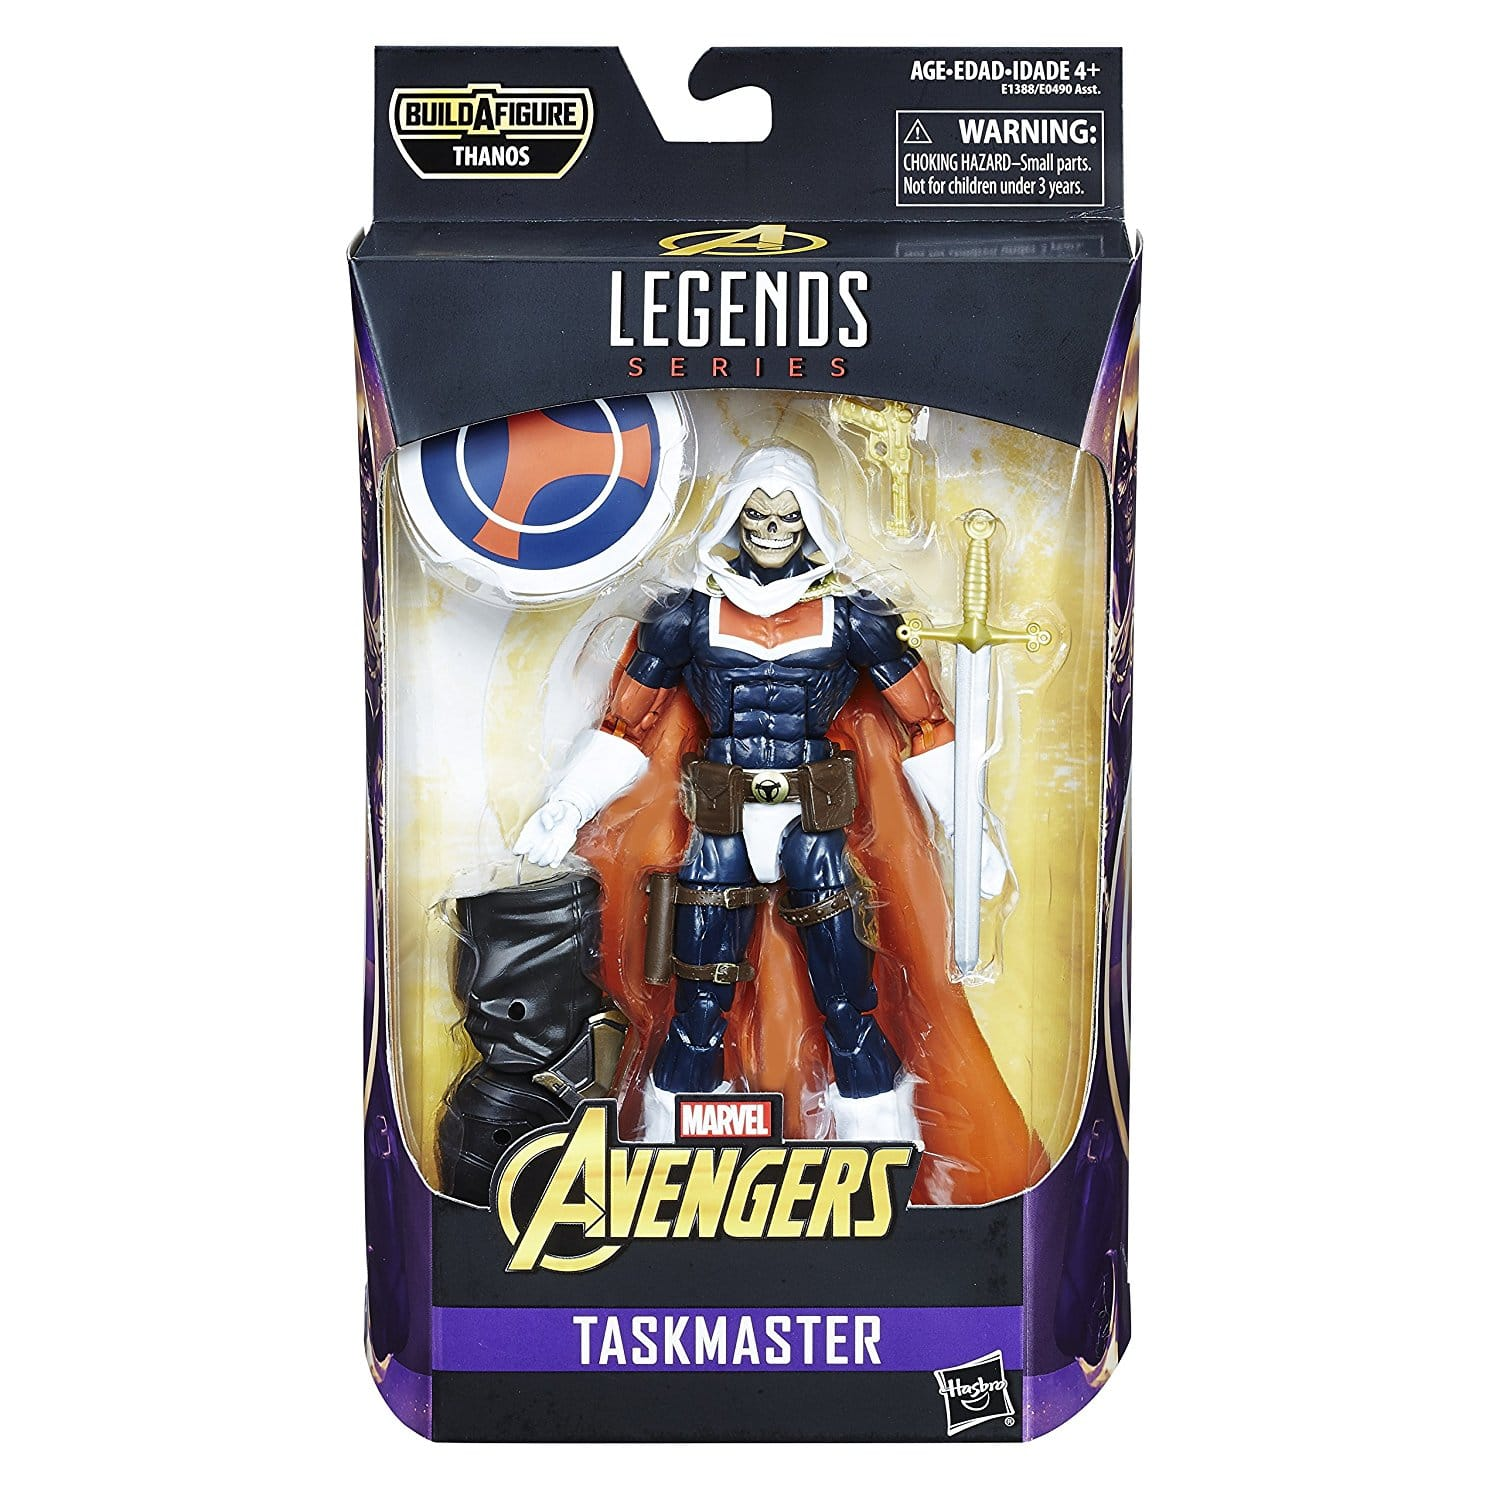 [WATCH] Marvel Legends Avengers Series 6-inch Taskmaster Review